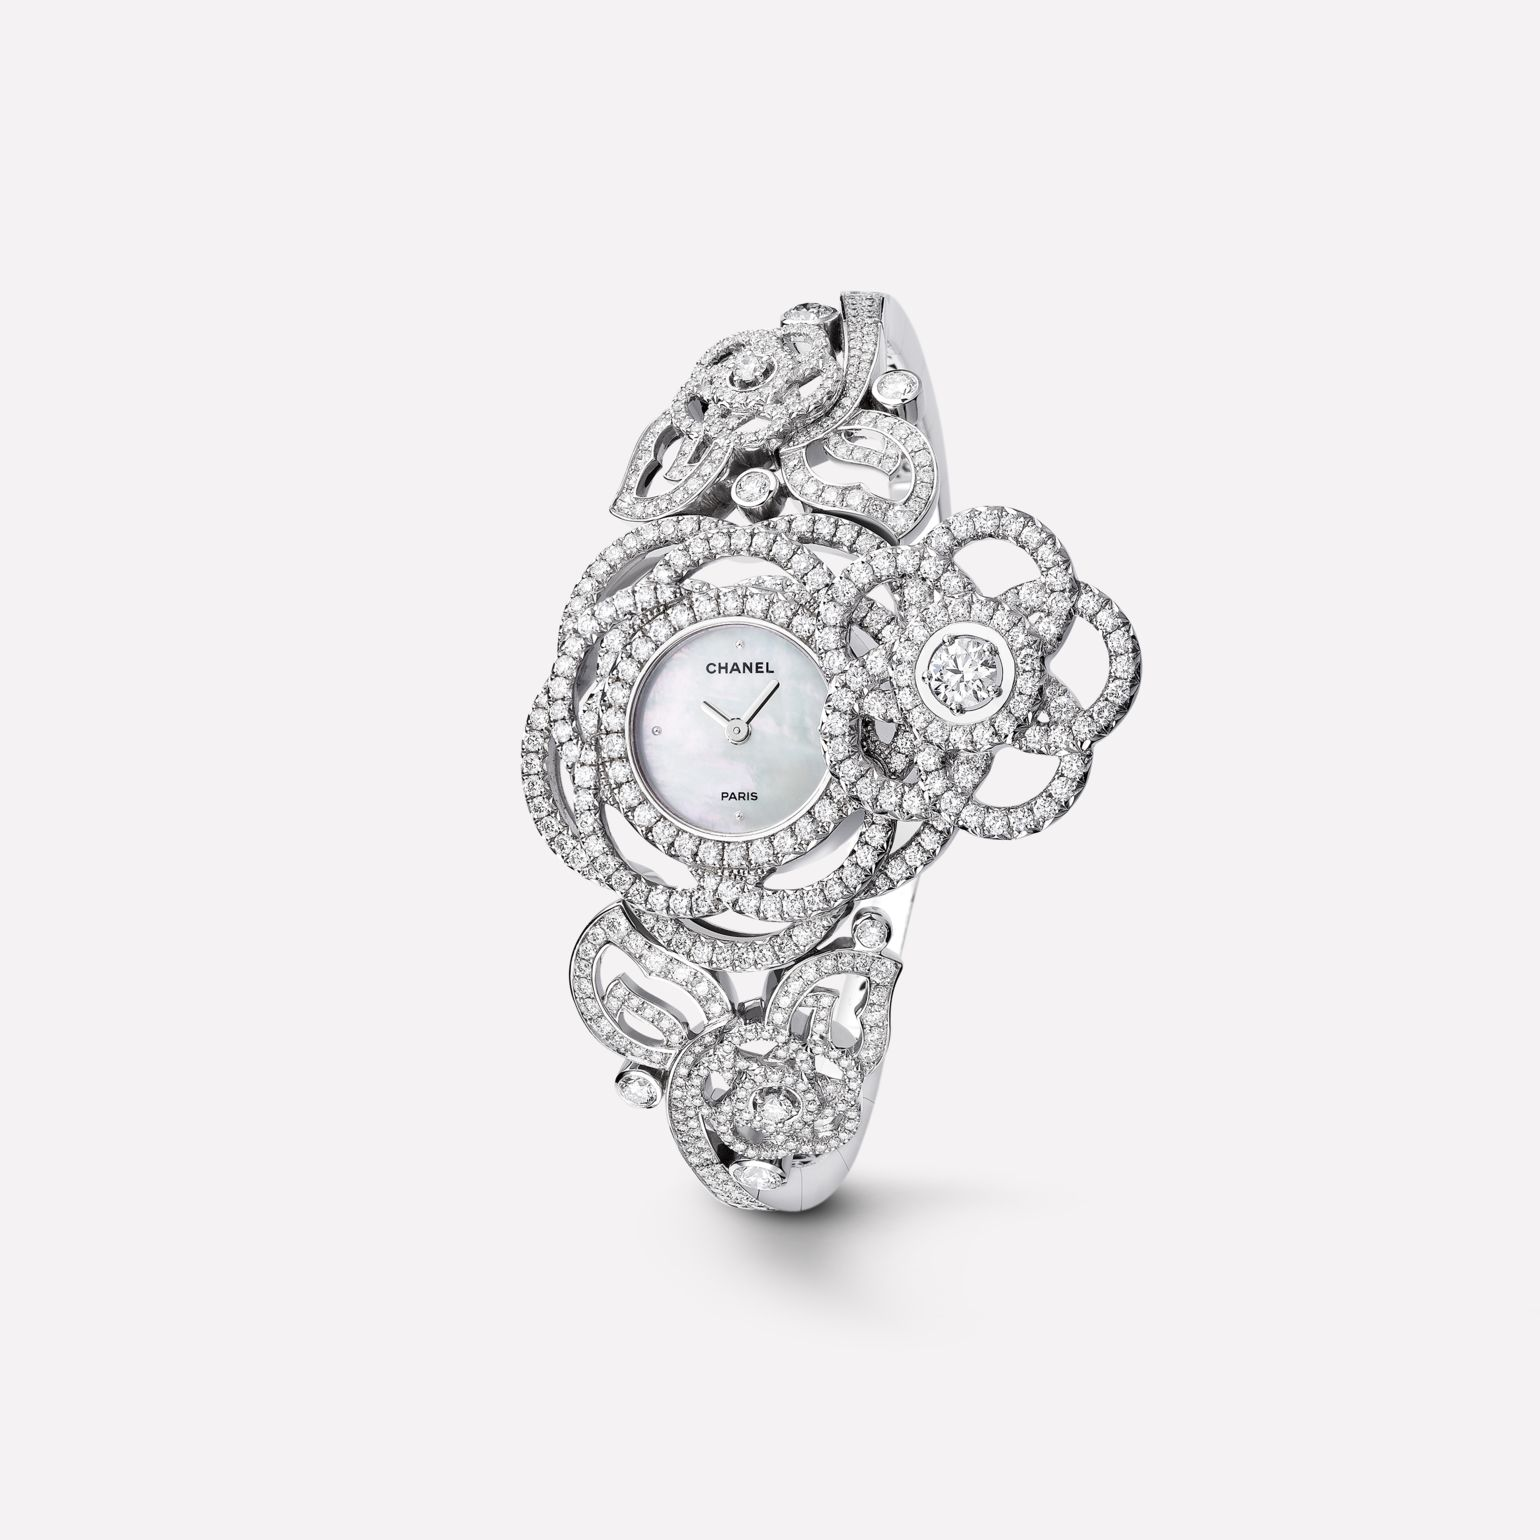 Camélia Jewellery Watch Secret watch with Camélia Brodé motif in 18K white gold, diamonds and diamond bracelet. Large version.